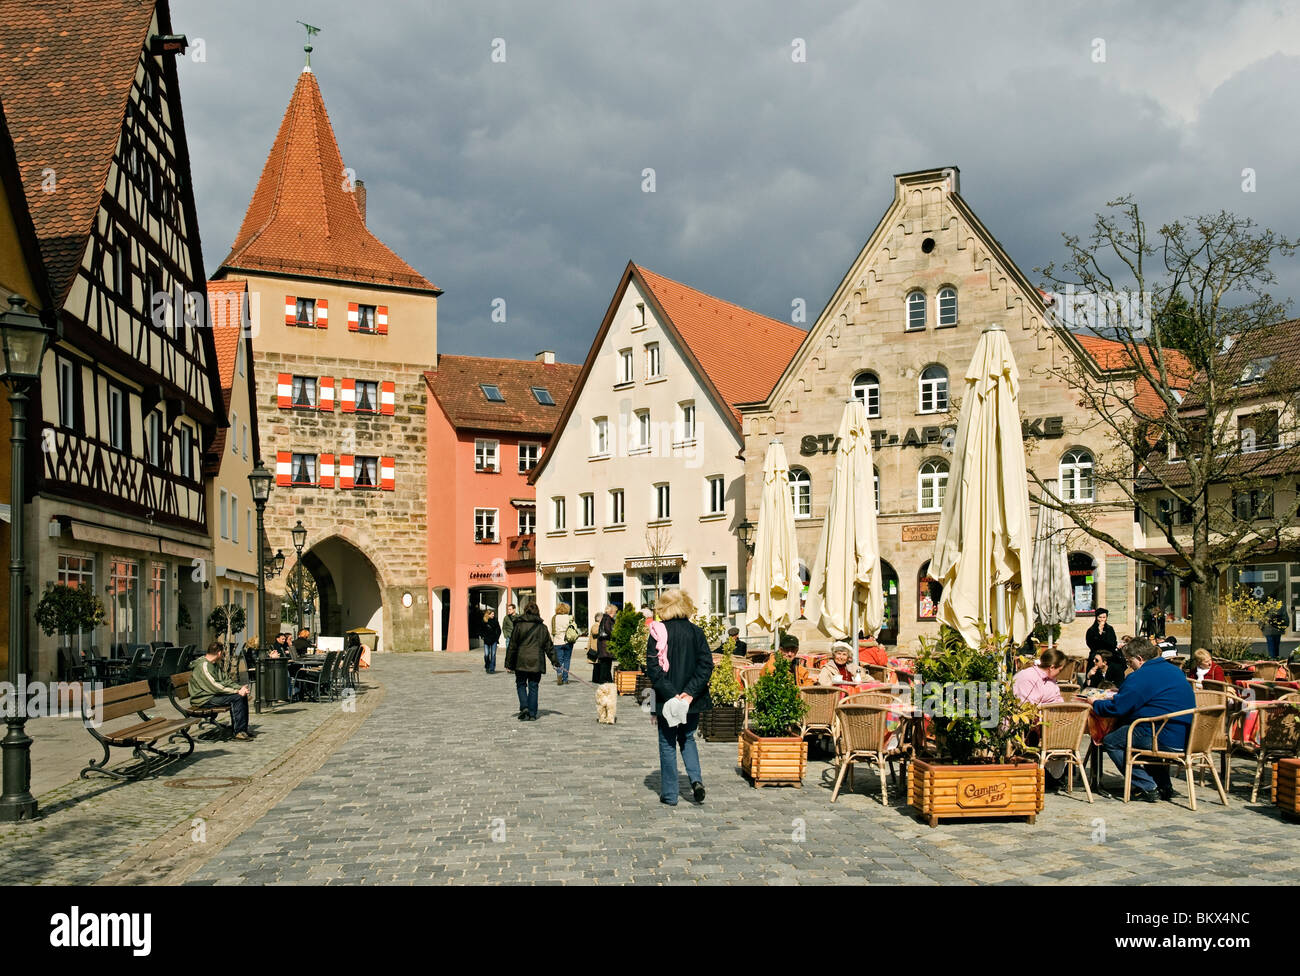 marktplatz in the town of lauf an der pegnitz near nuremberg stock photo royalty free image. Black Bedroom Furniture Sets. Home Design Ideas